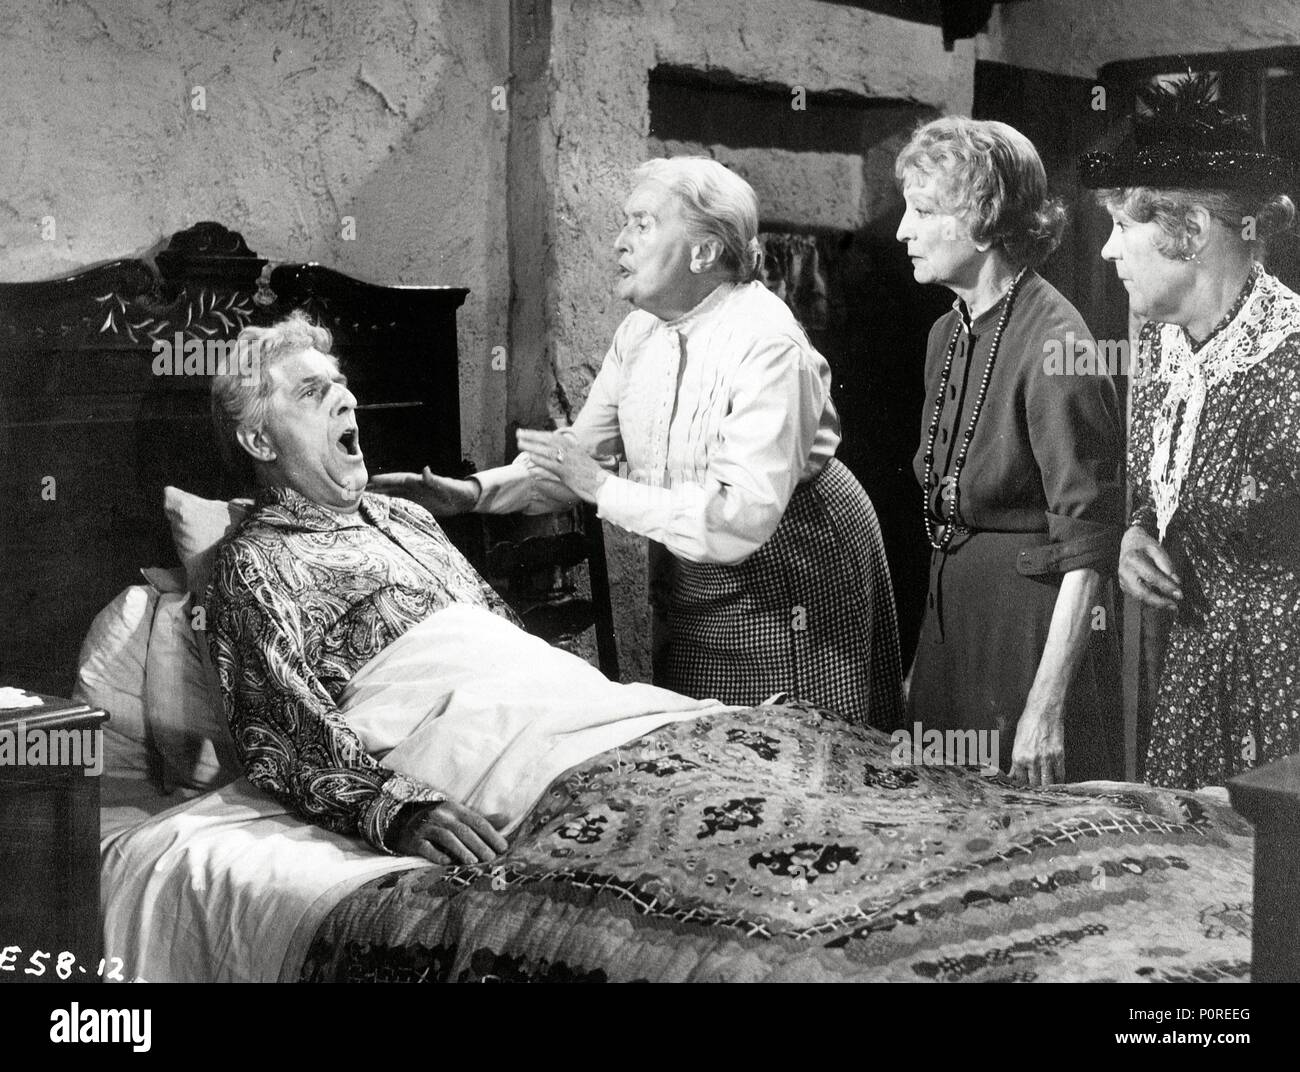 Original Film Title: ALIVE AND KICKING.  English Title: ALIVE AND KICKING.  Film Director: CYRIL FRANKEL.  Year: 1959.  Stars: STANLEY HOLLOWAY; ESTELLE WINWOOD; SYBIL THORNDIKE. Credit: ASSOCIATED BRITISH PICTURES / Album - Stock Image